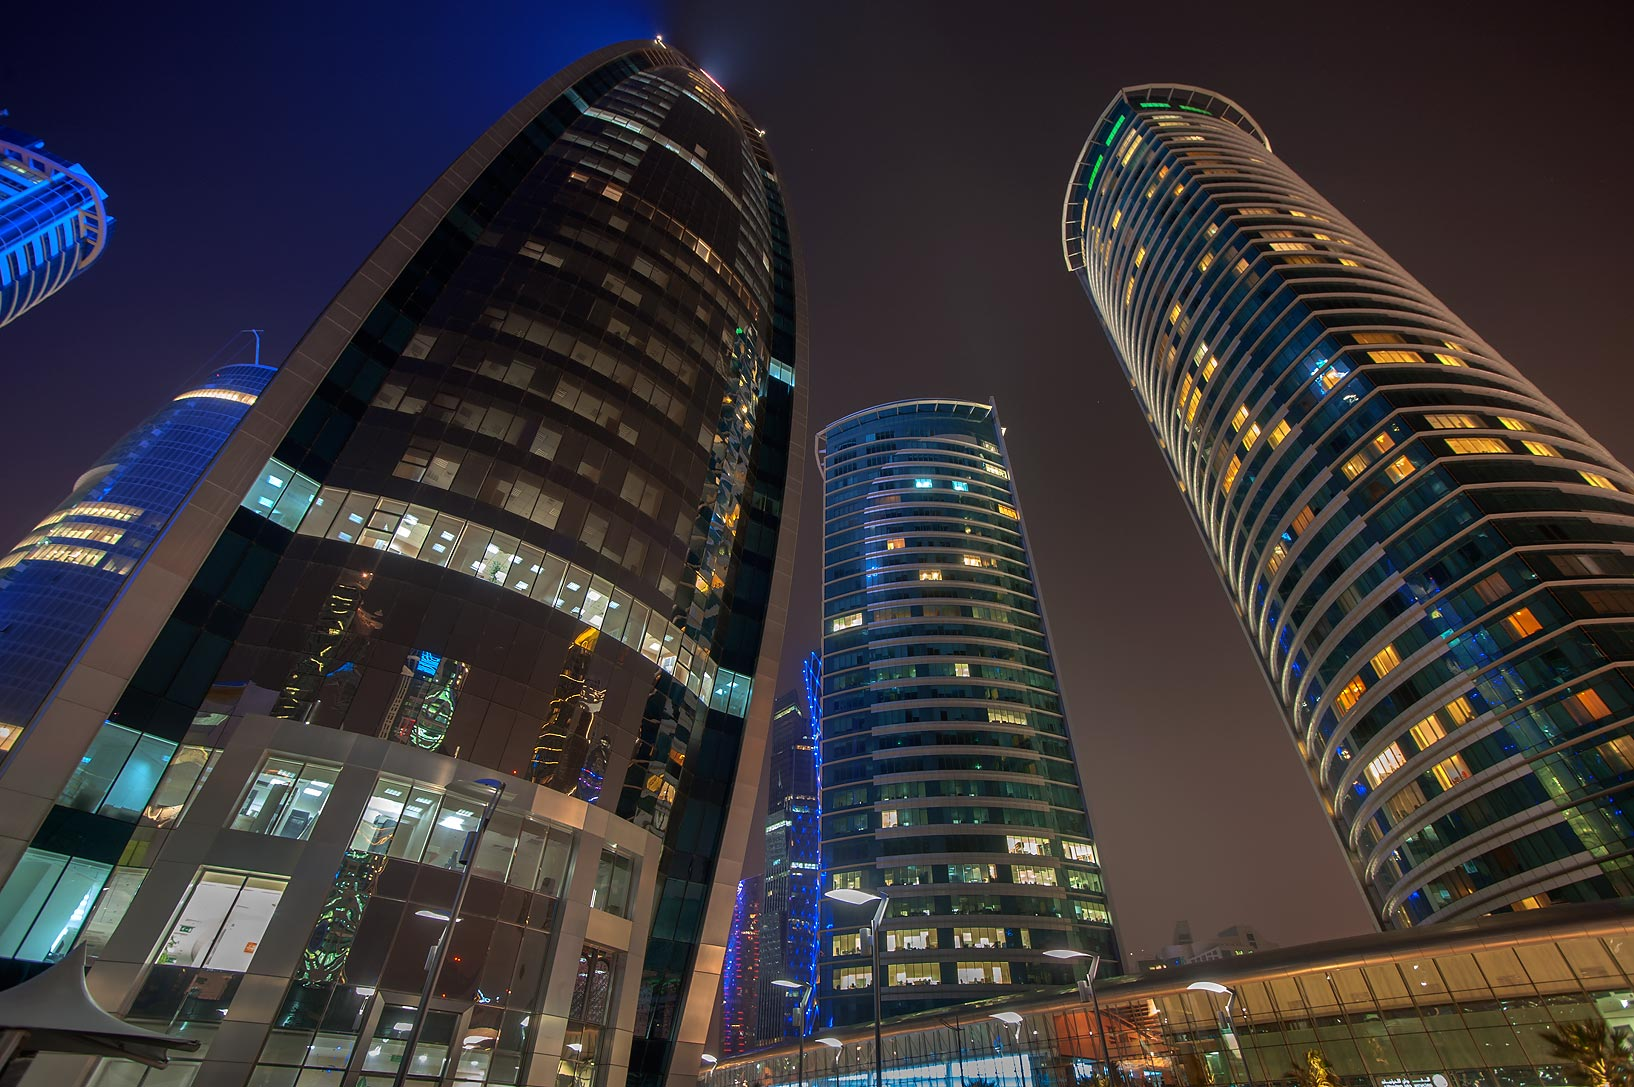 Woqod and Al Fardan Twin towers in West Bay. Doha, Qatar